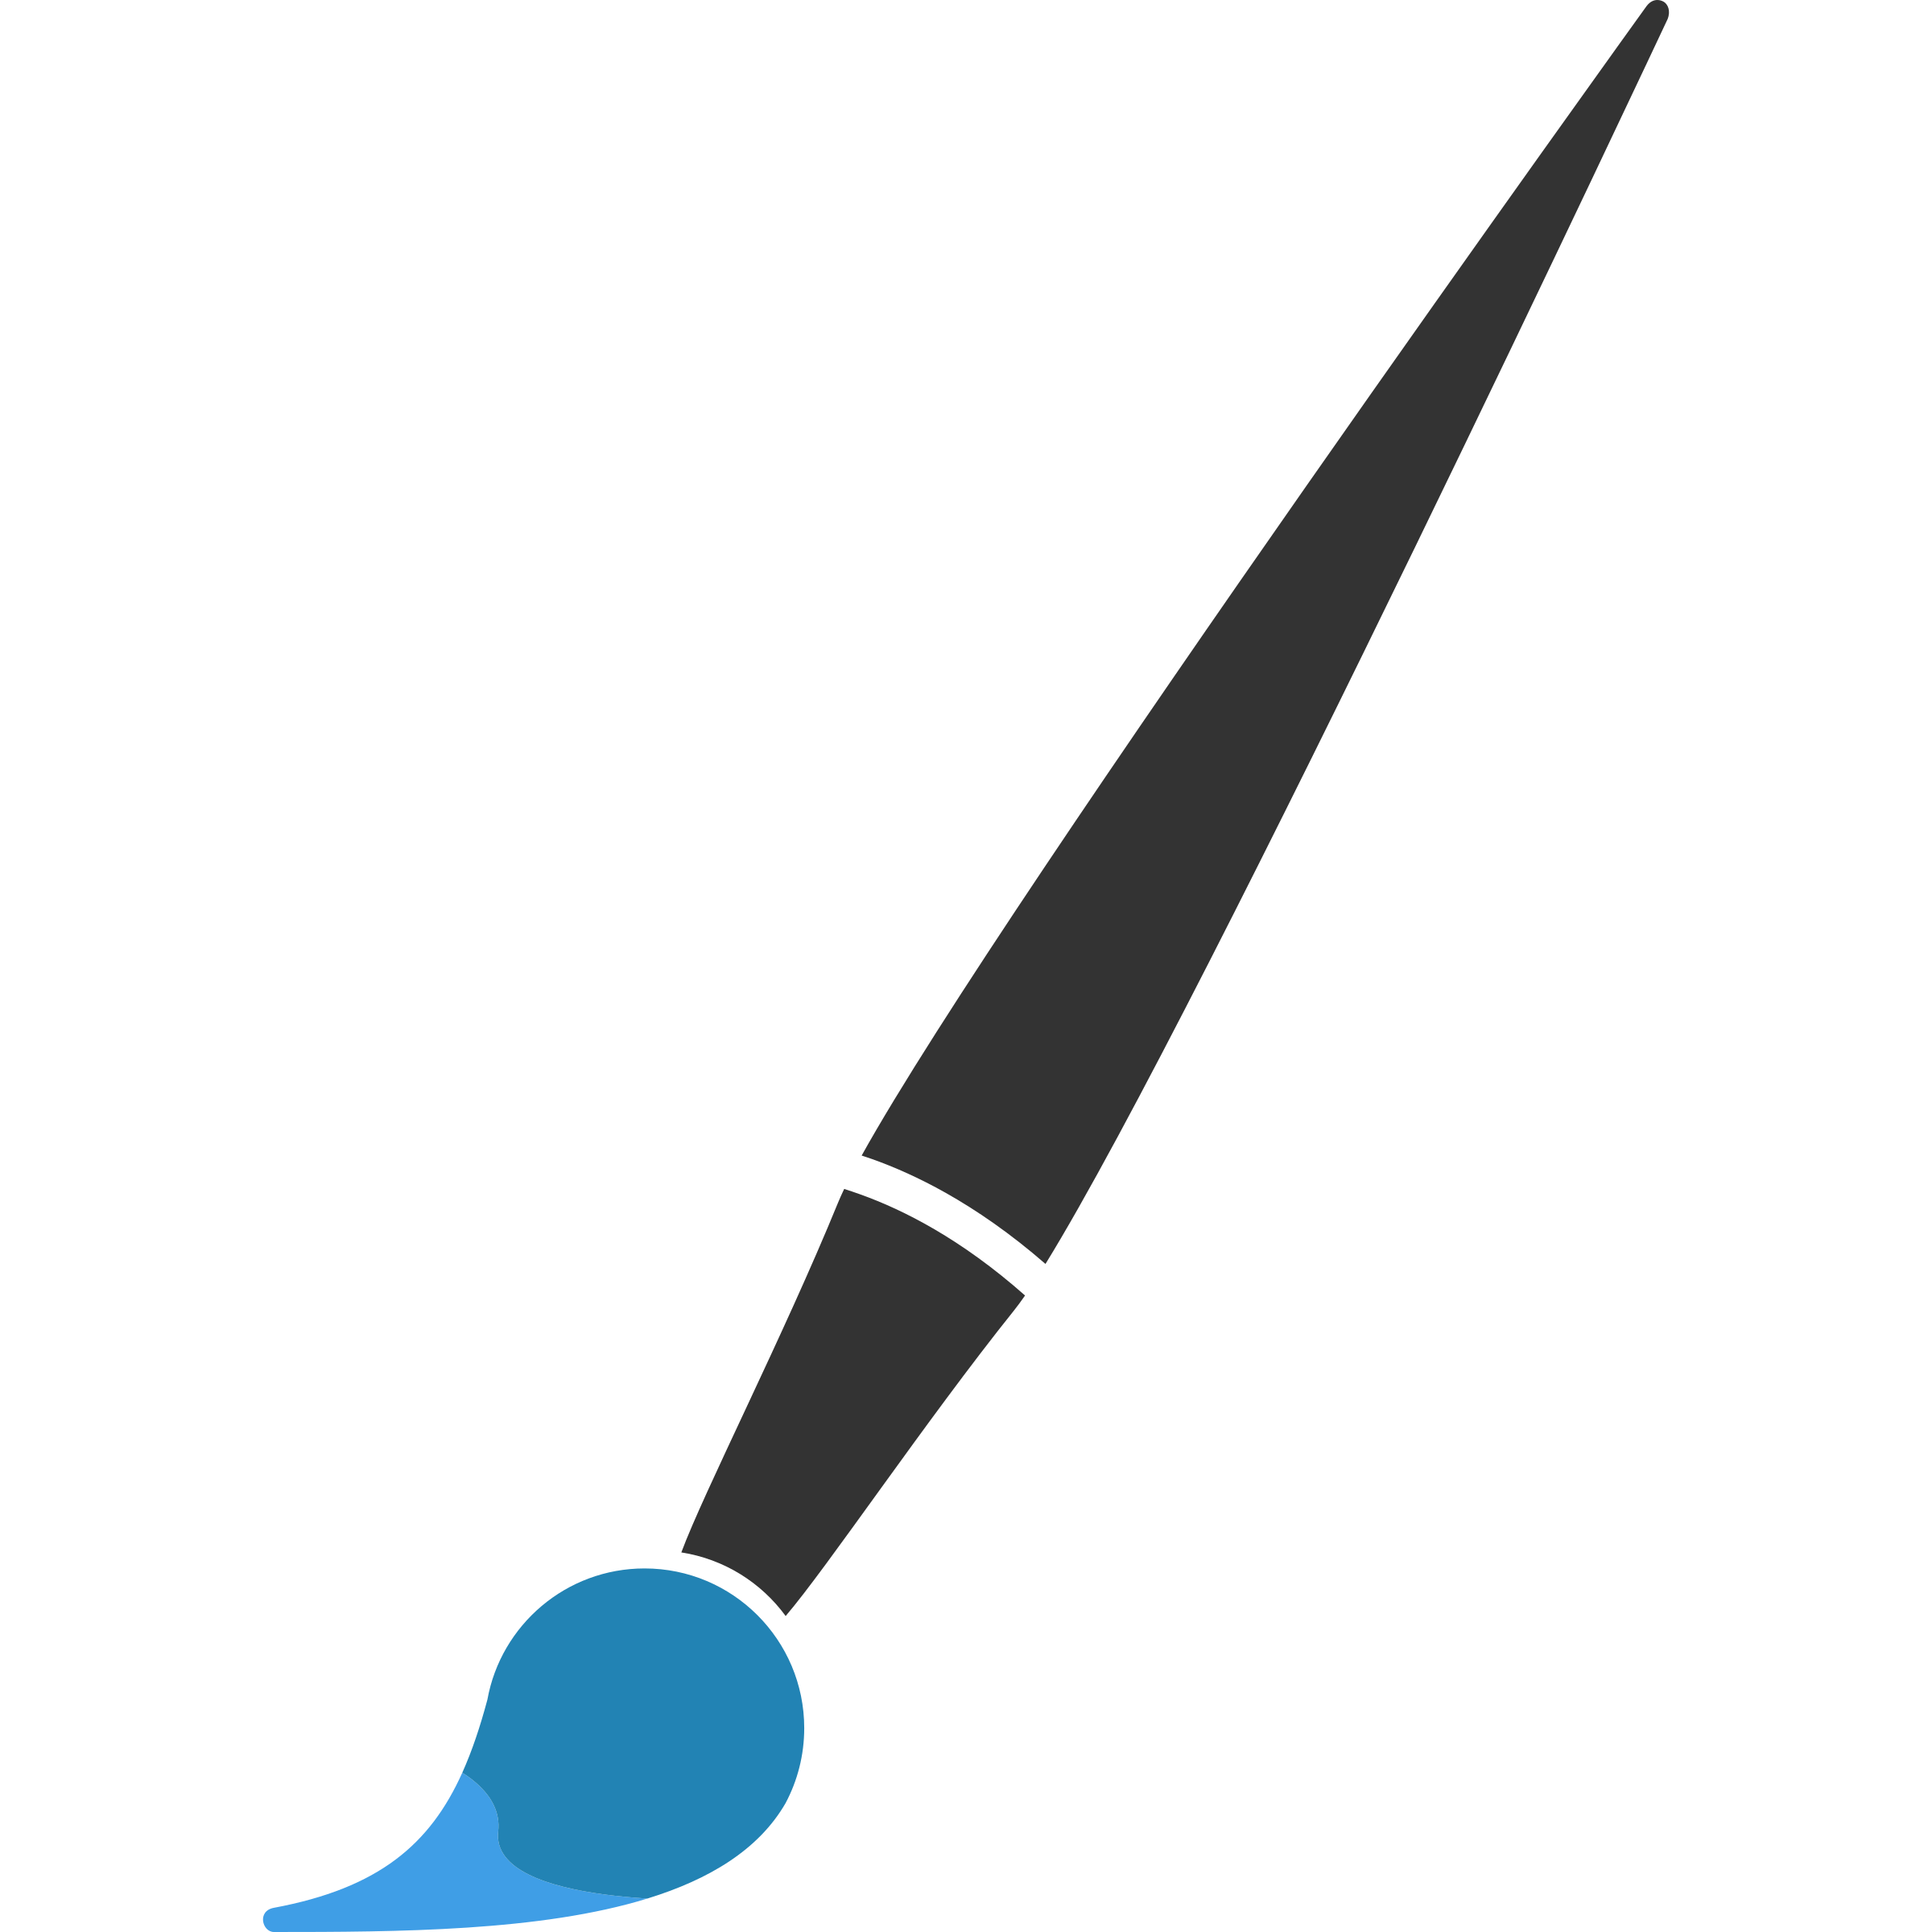 Clipart - Minimalist Paint Brush